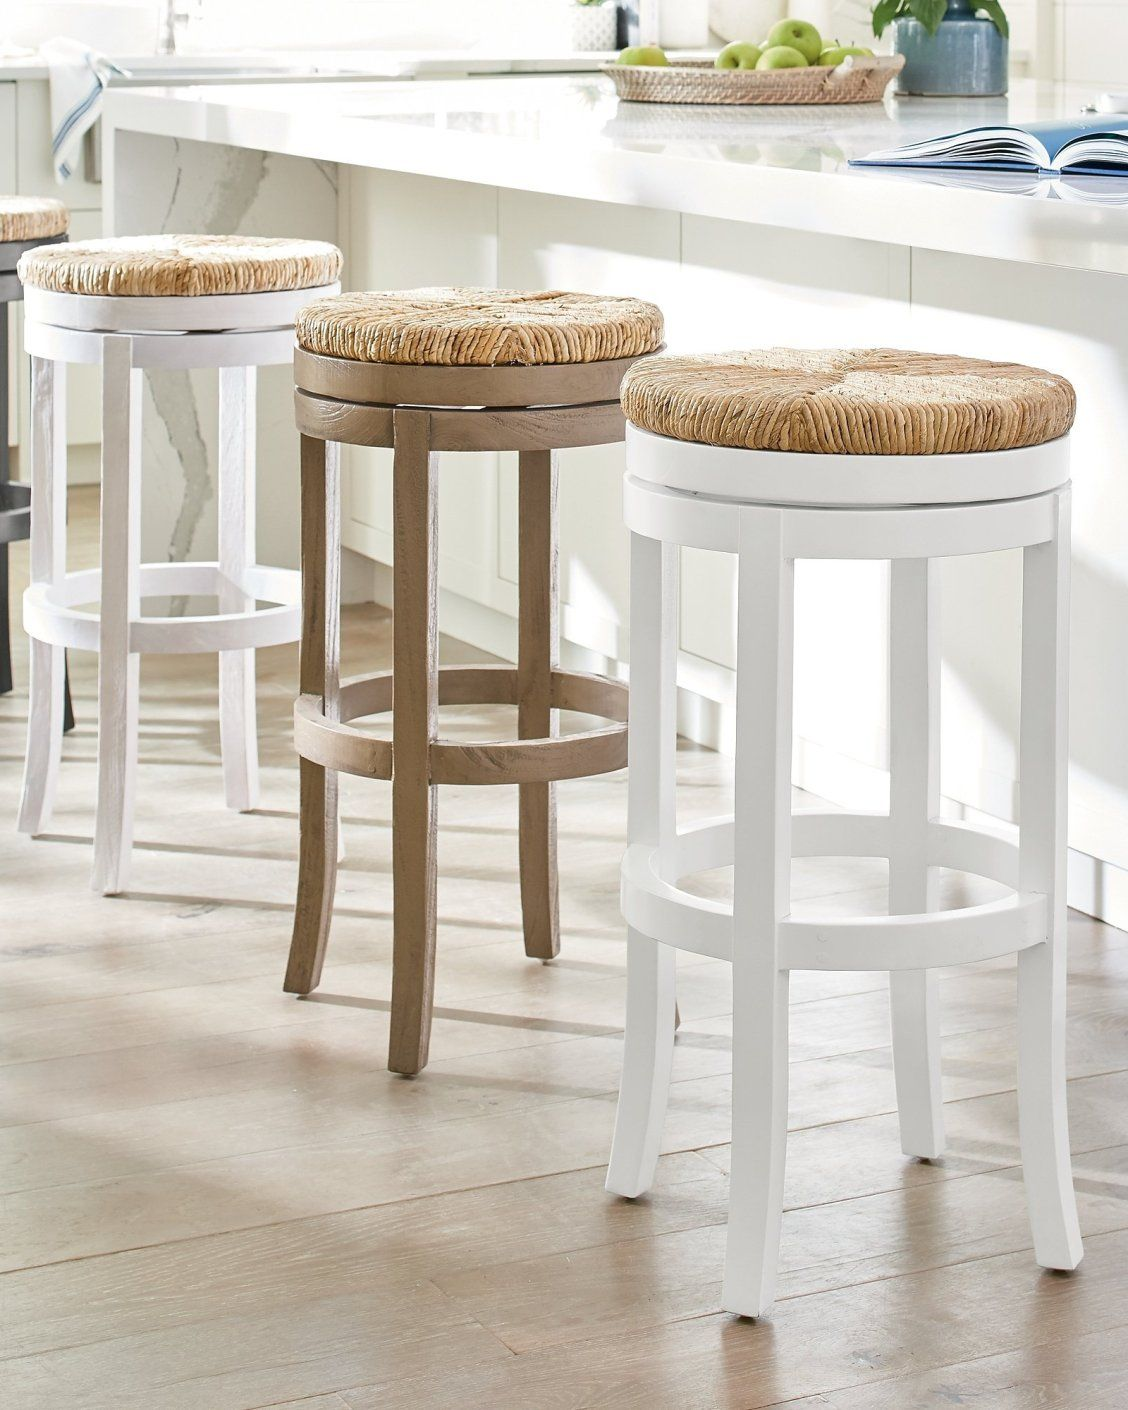 Pin On Counter Stools